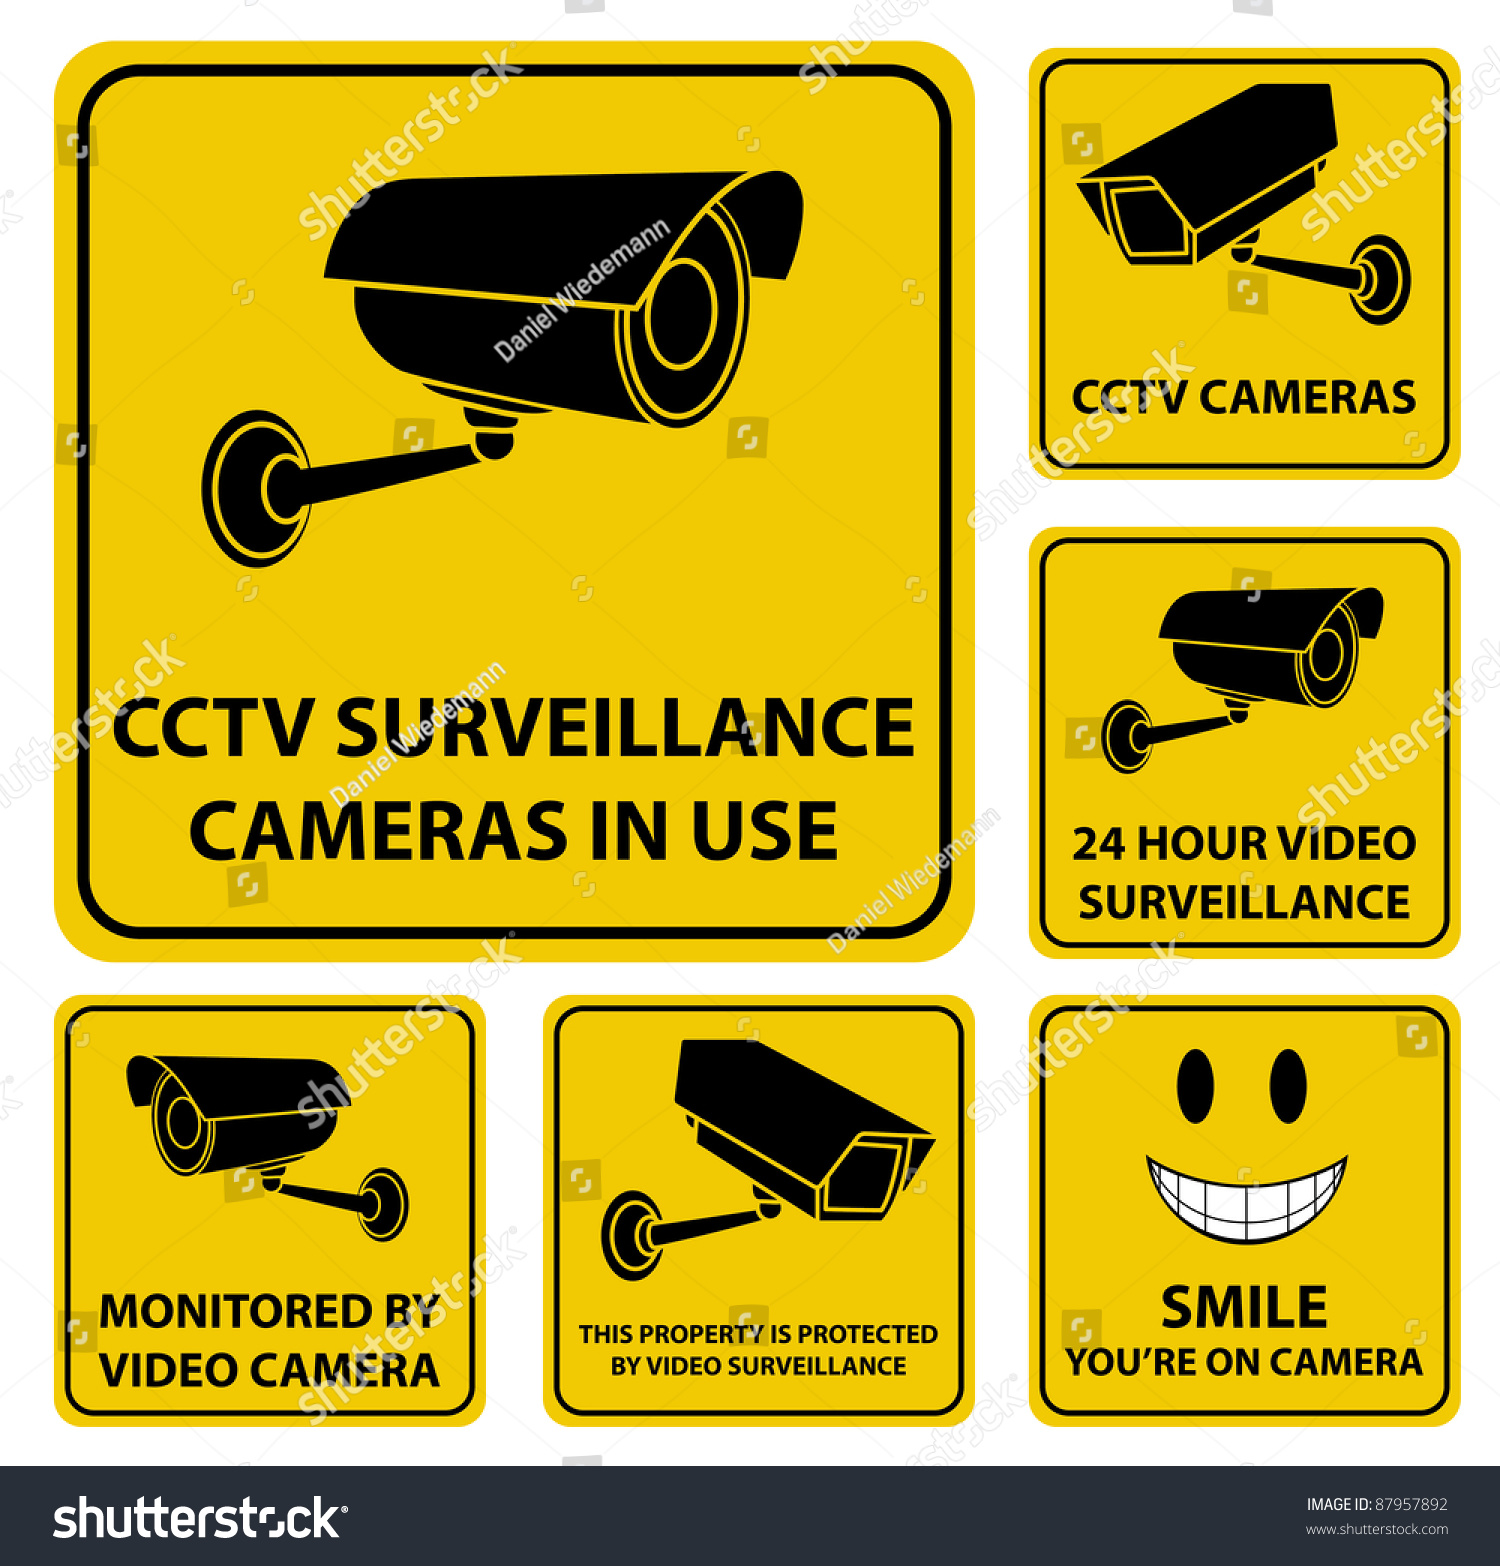 set vector surveillance cctv camera yellow stock vector 87957892 shutterstock. Black Bedroom Furniture Sets. Home Design Ideas